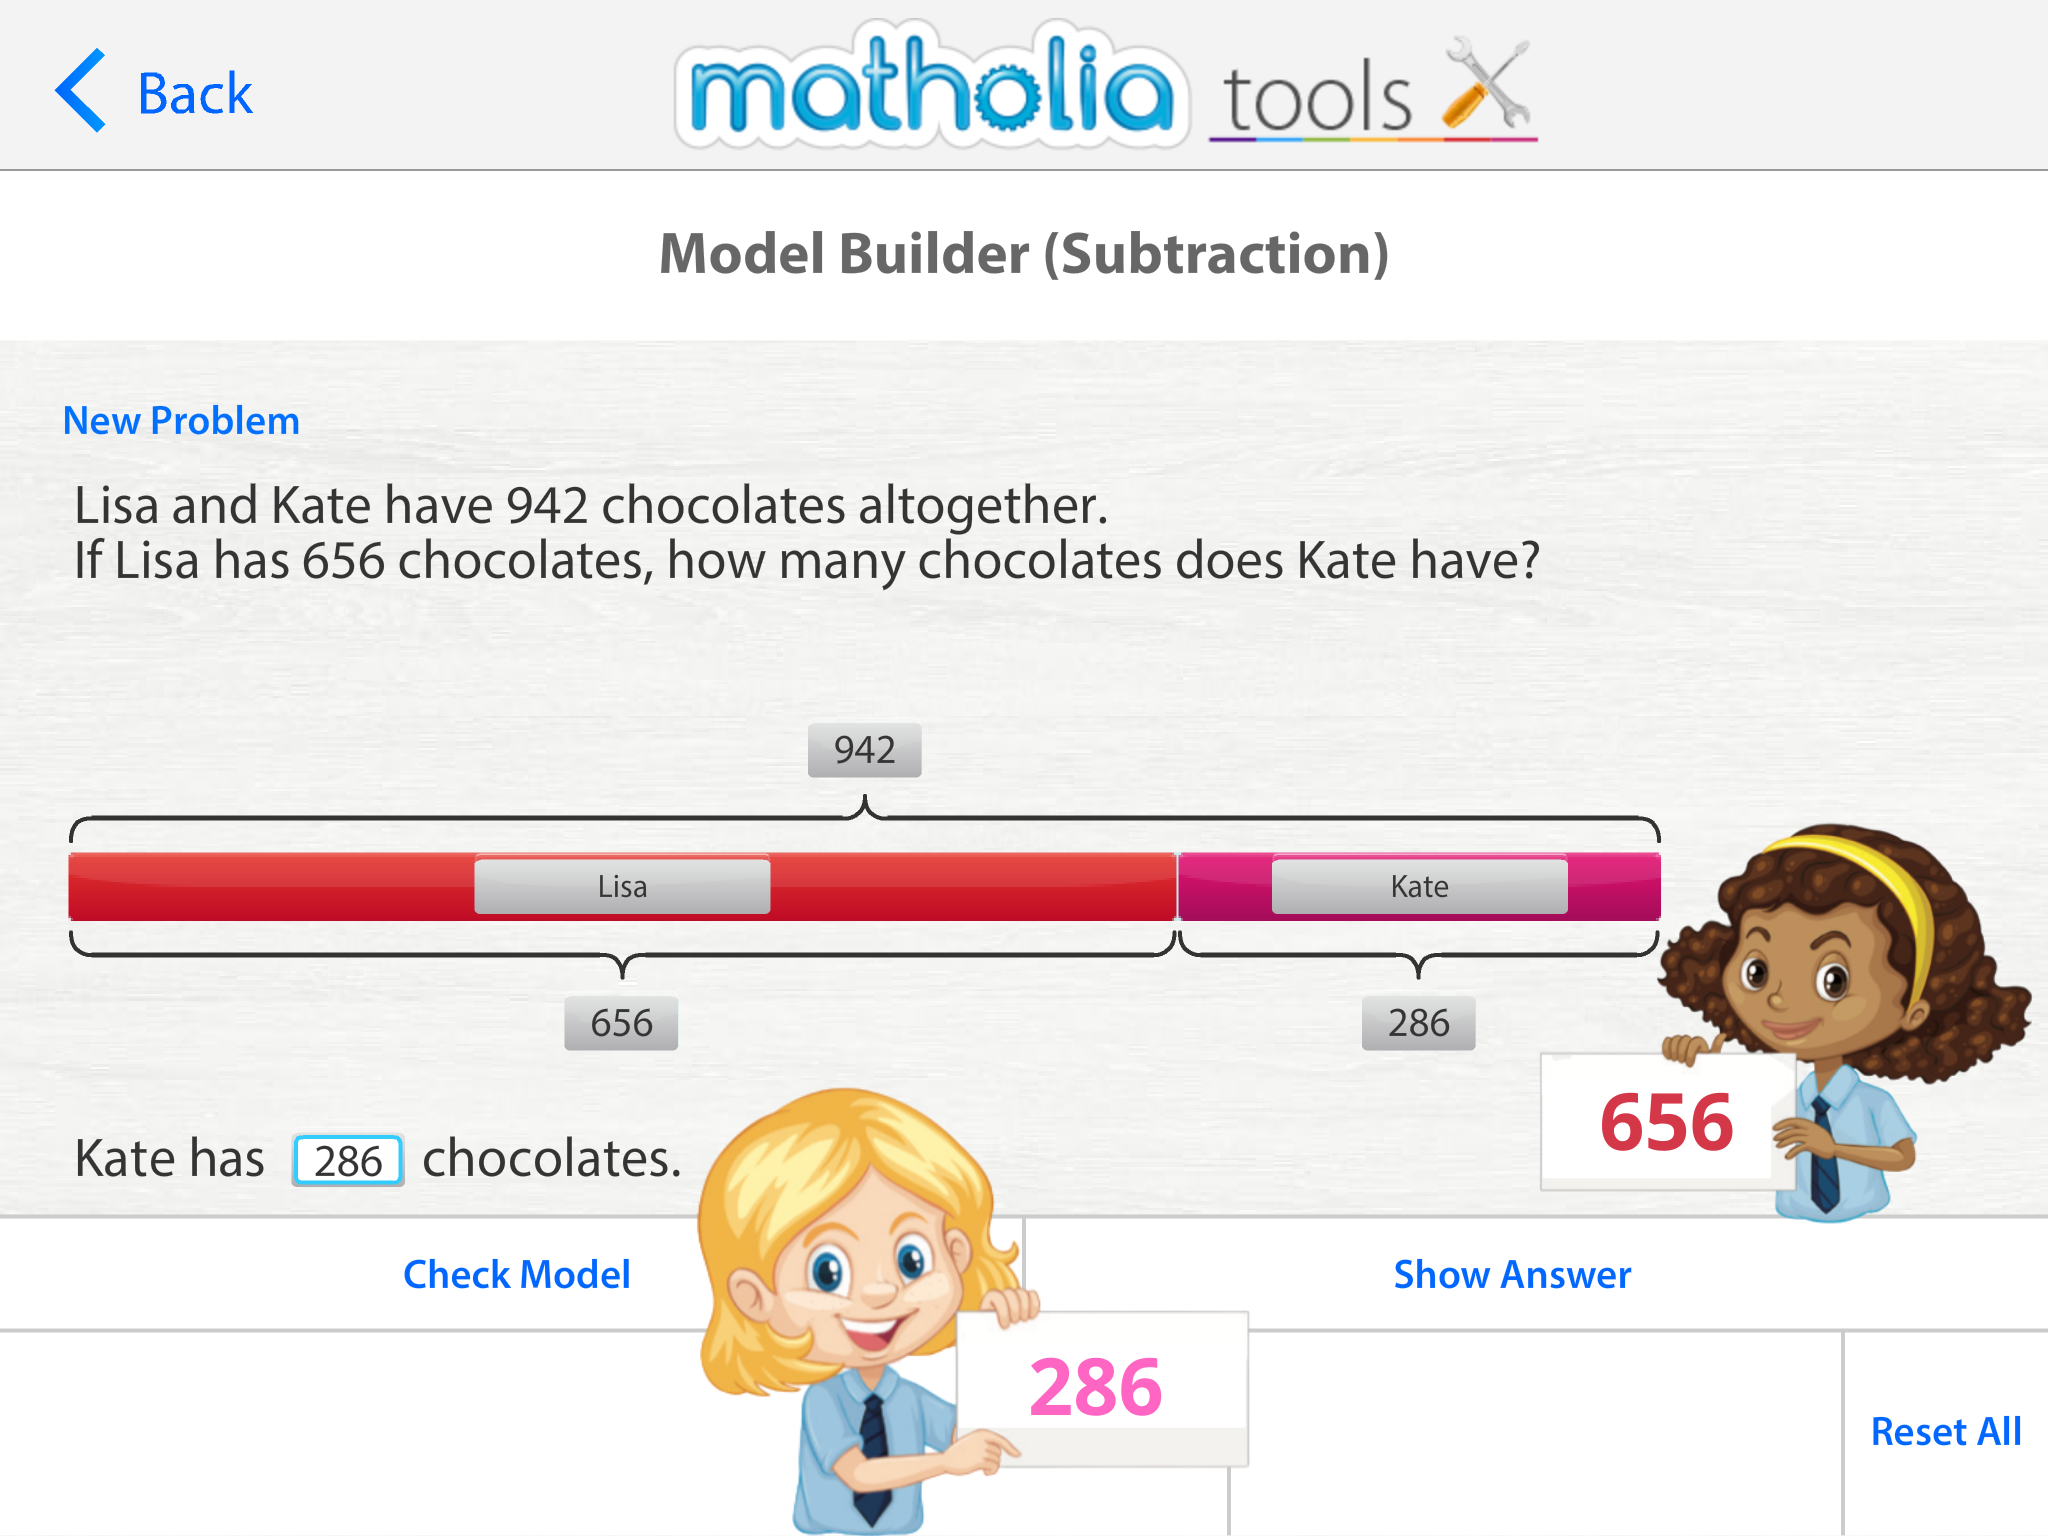 Matholia Tools Model Builder Subtraction Play To Learn Subtraction Primary Maths [ 1536 x 2048 Pixel ]